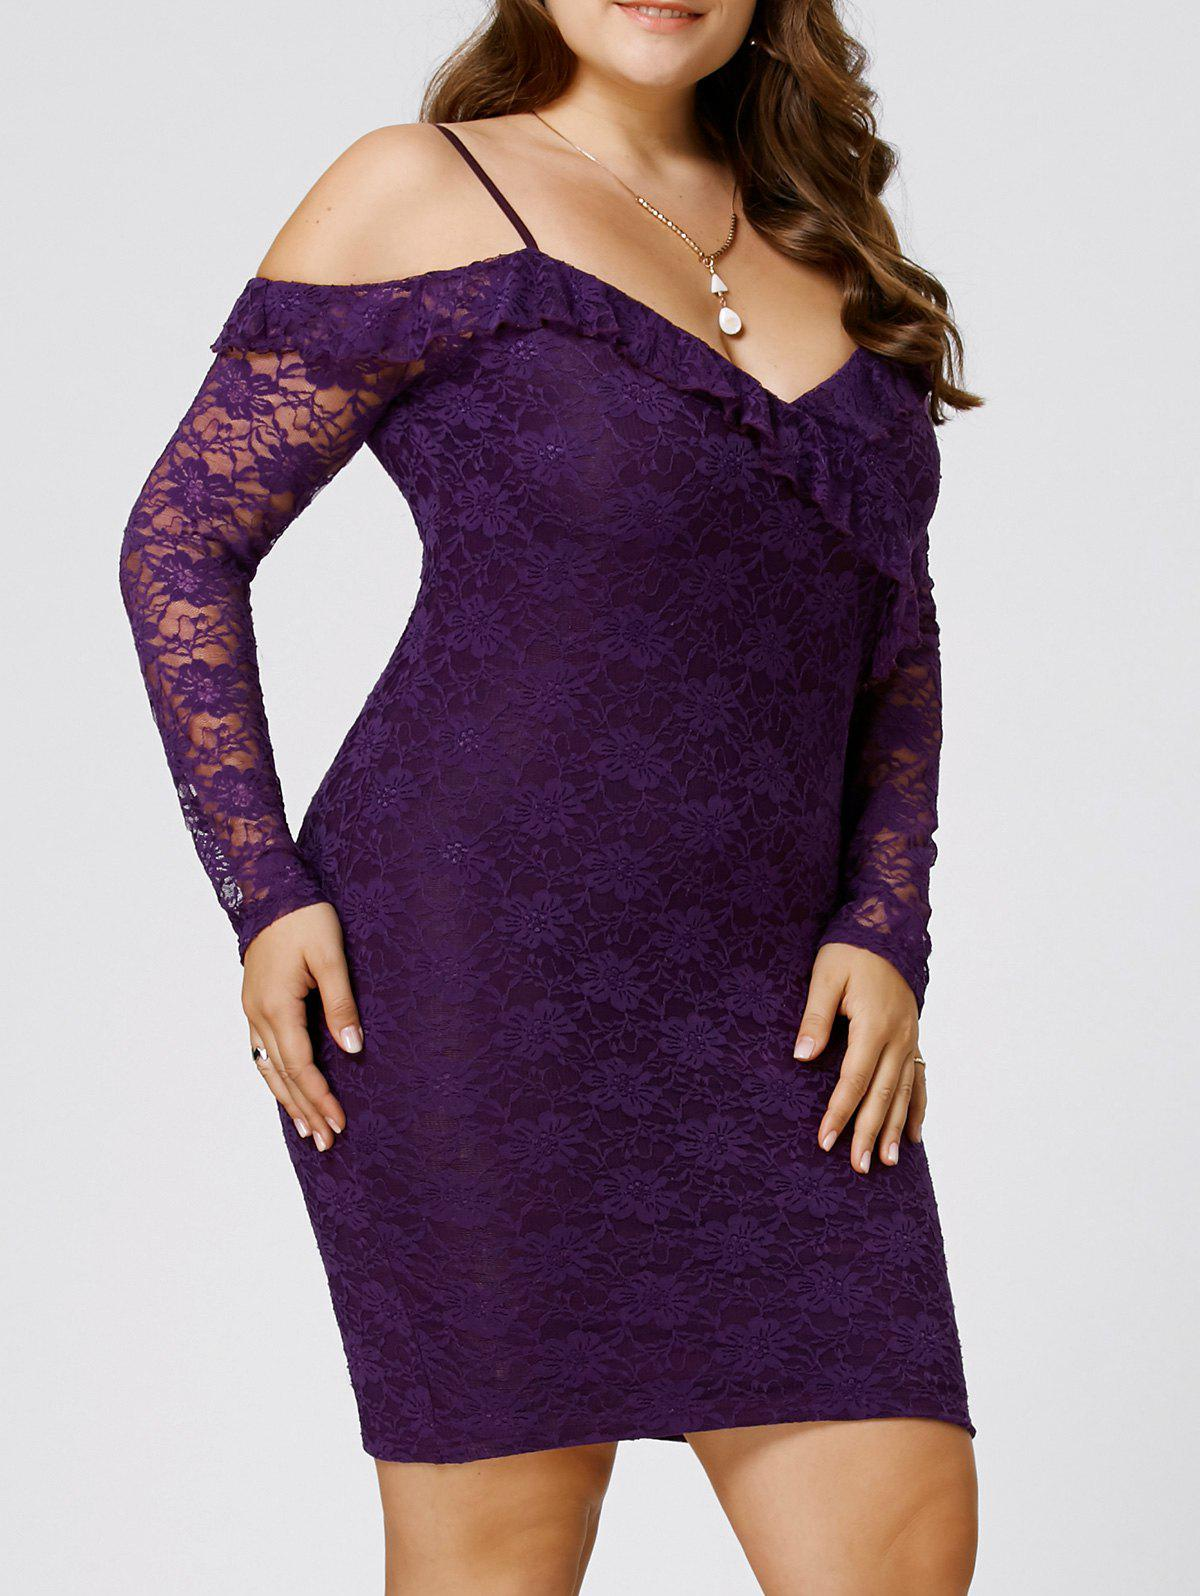 Plus Size Dew Shoulder Lace Bodycon DressWOMEN<br><br>Size: 2XL; Color: PURPLE; Style: Brief; Material: Polyester; Silhouette: Bodycon; Dresses Length: Knee-Length; Neckline: Spaghetti Strap; Sleeve Length: Long Sleeves; Embellishment: Lace; Pattern Type: Floral; With Belt: No; Season: Fall,Spring,Summer; Weight: 0.3500kg; Package Contents: 1 x Dress;